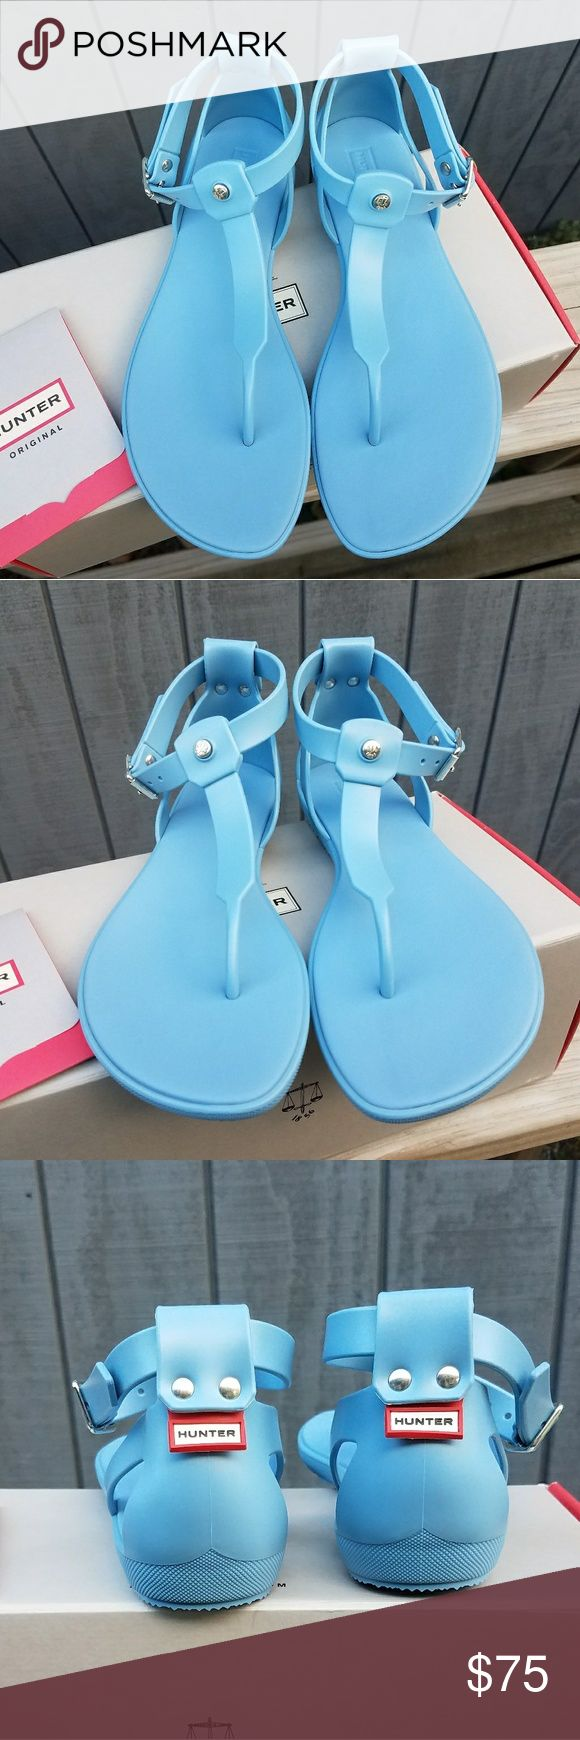 "Hunter Original T-Bar Sandals - Thong toe - Adjustable ankle buckle closure - Back brand logo tab - Approx. 0.75"" heel - Made in Italy - Rubber upper, rubber sole - Color: Blue Sky Hunter Shoes Sandals"